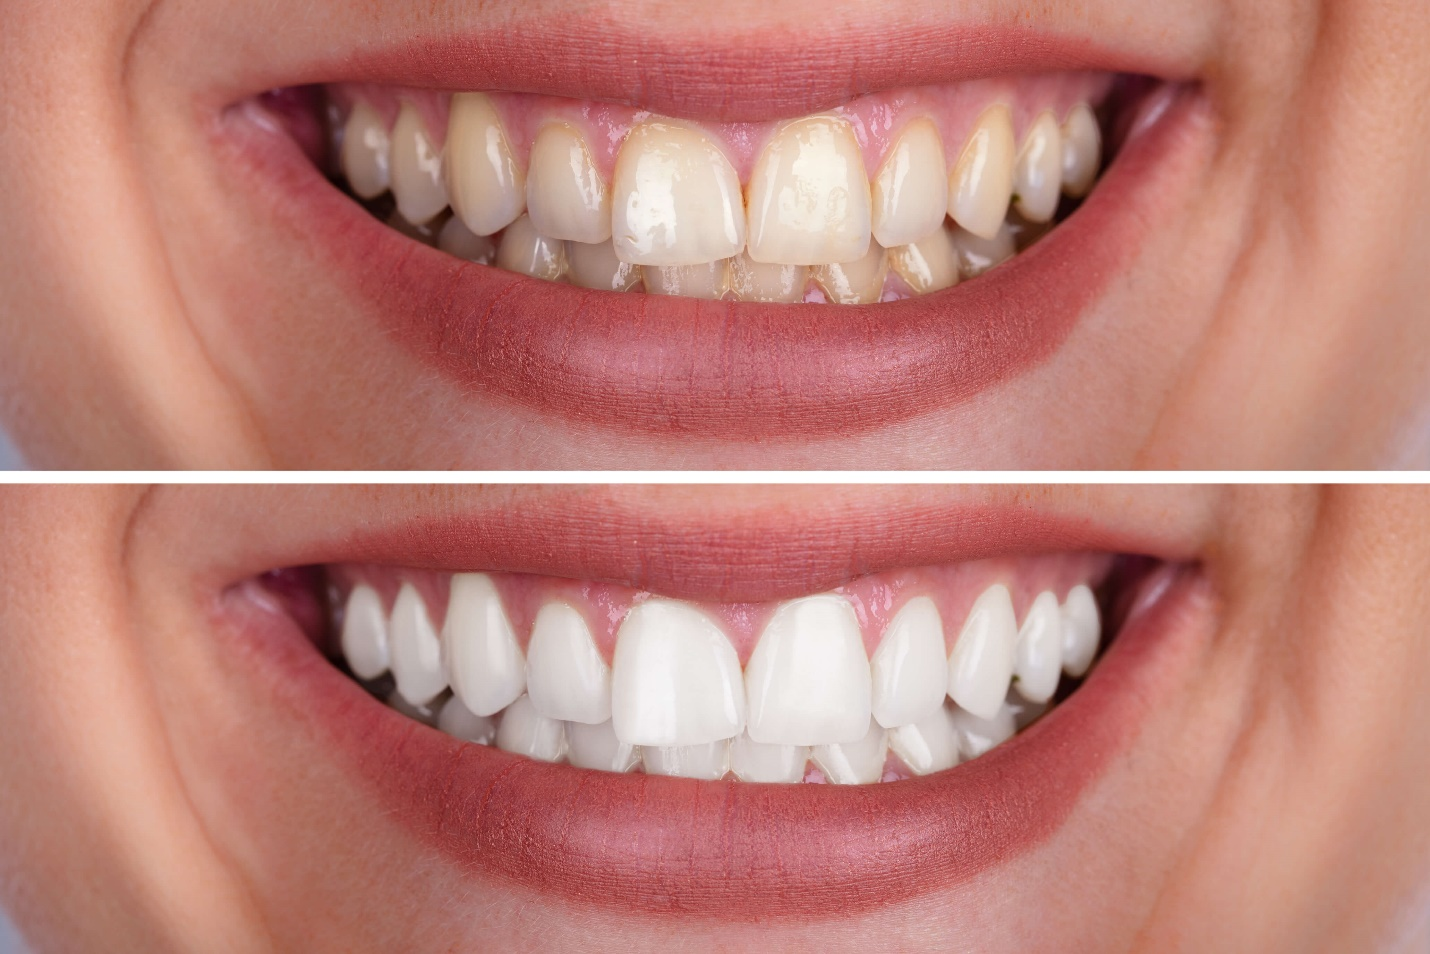 Close-up of a person's teeth  Description automatically generated